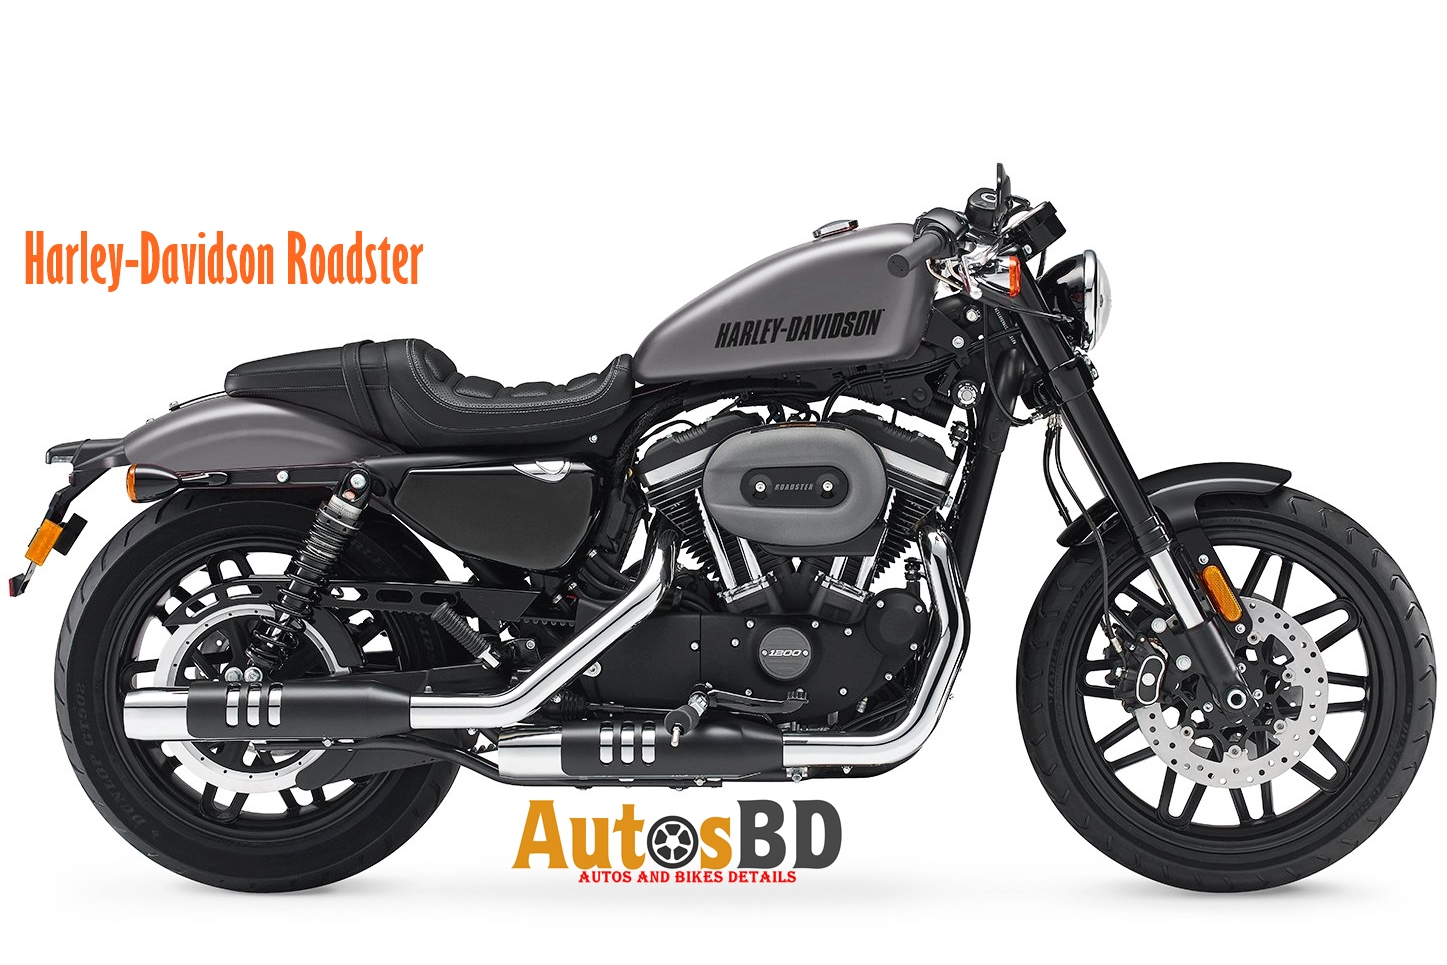 Harley-Davidson Roadster Motorcycle Specification